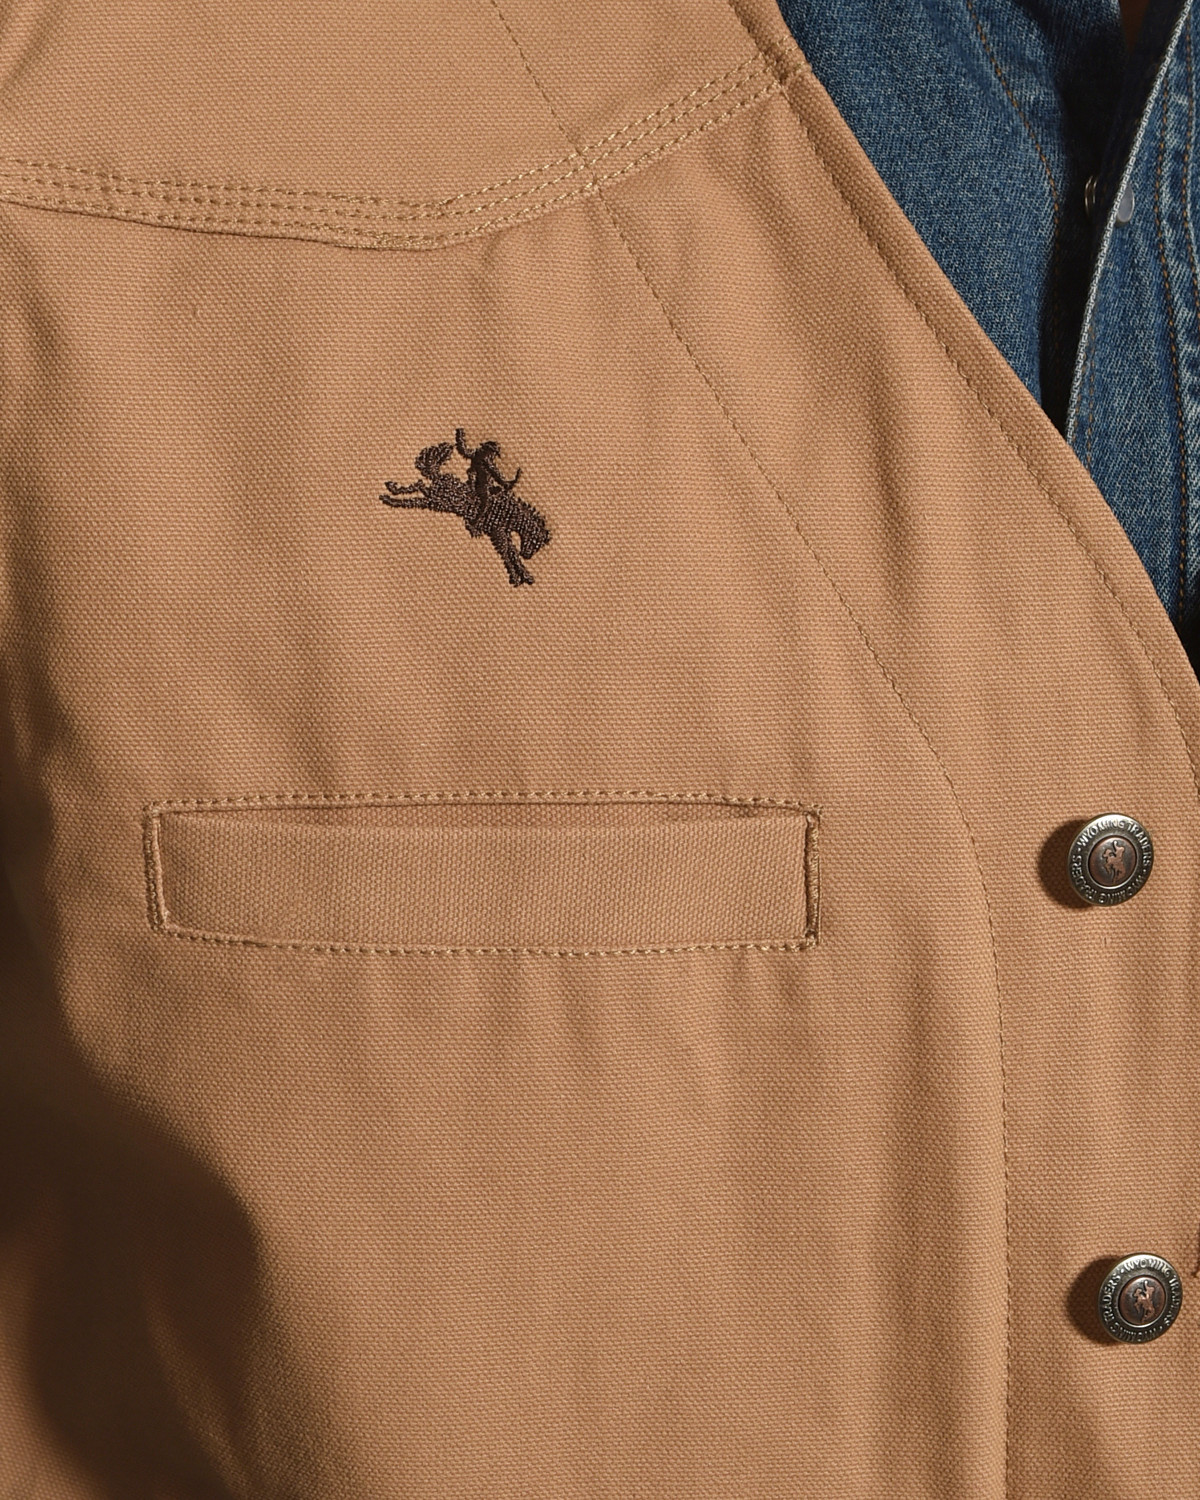 Wyoming Traders Men's Tan Texas Concealed Carry Vest